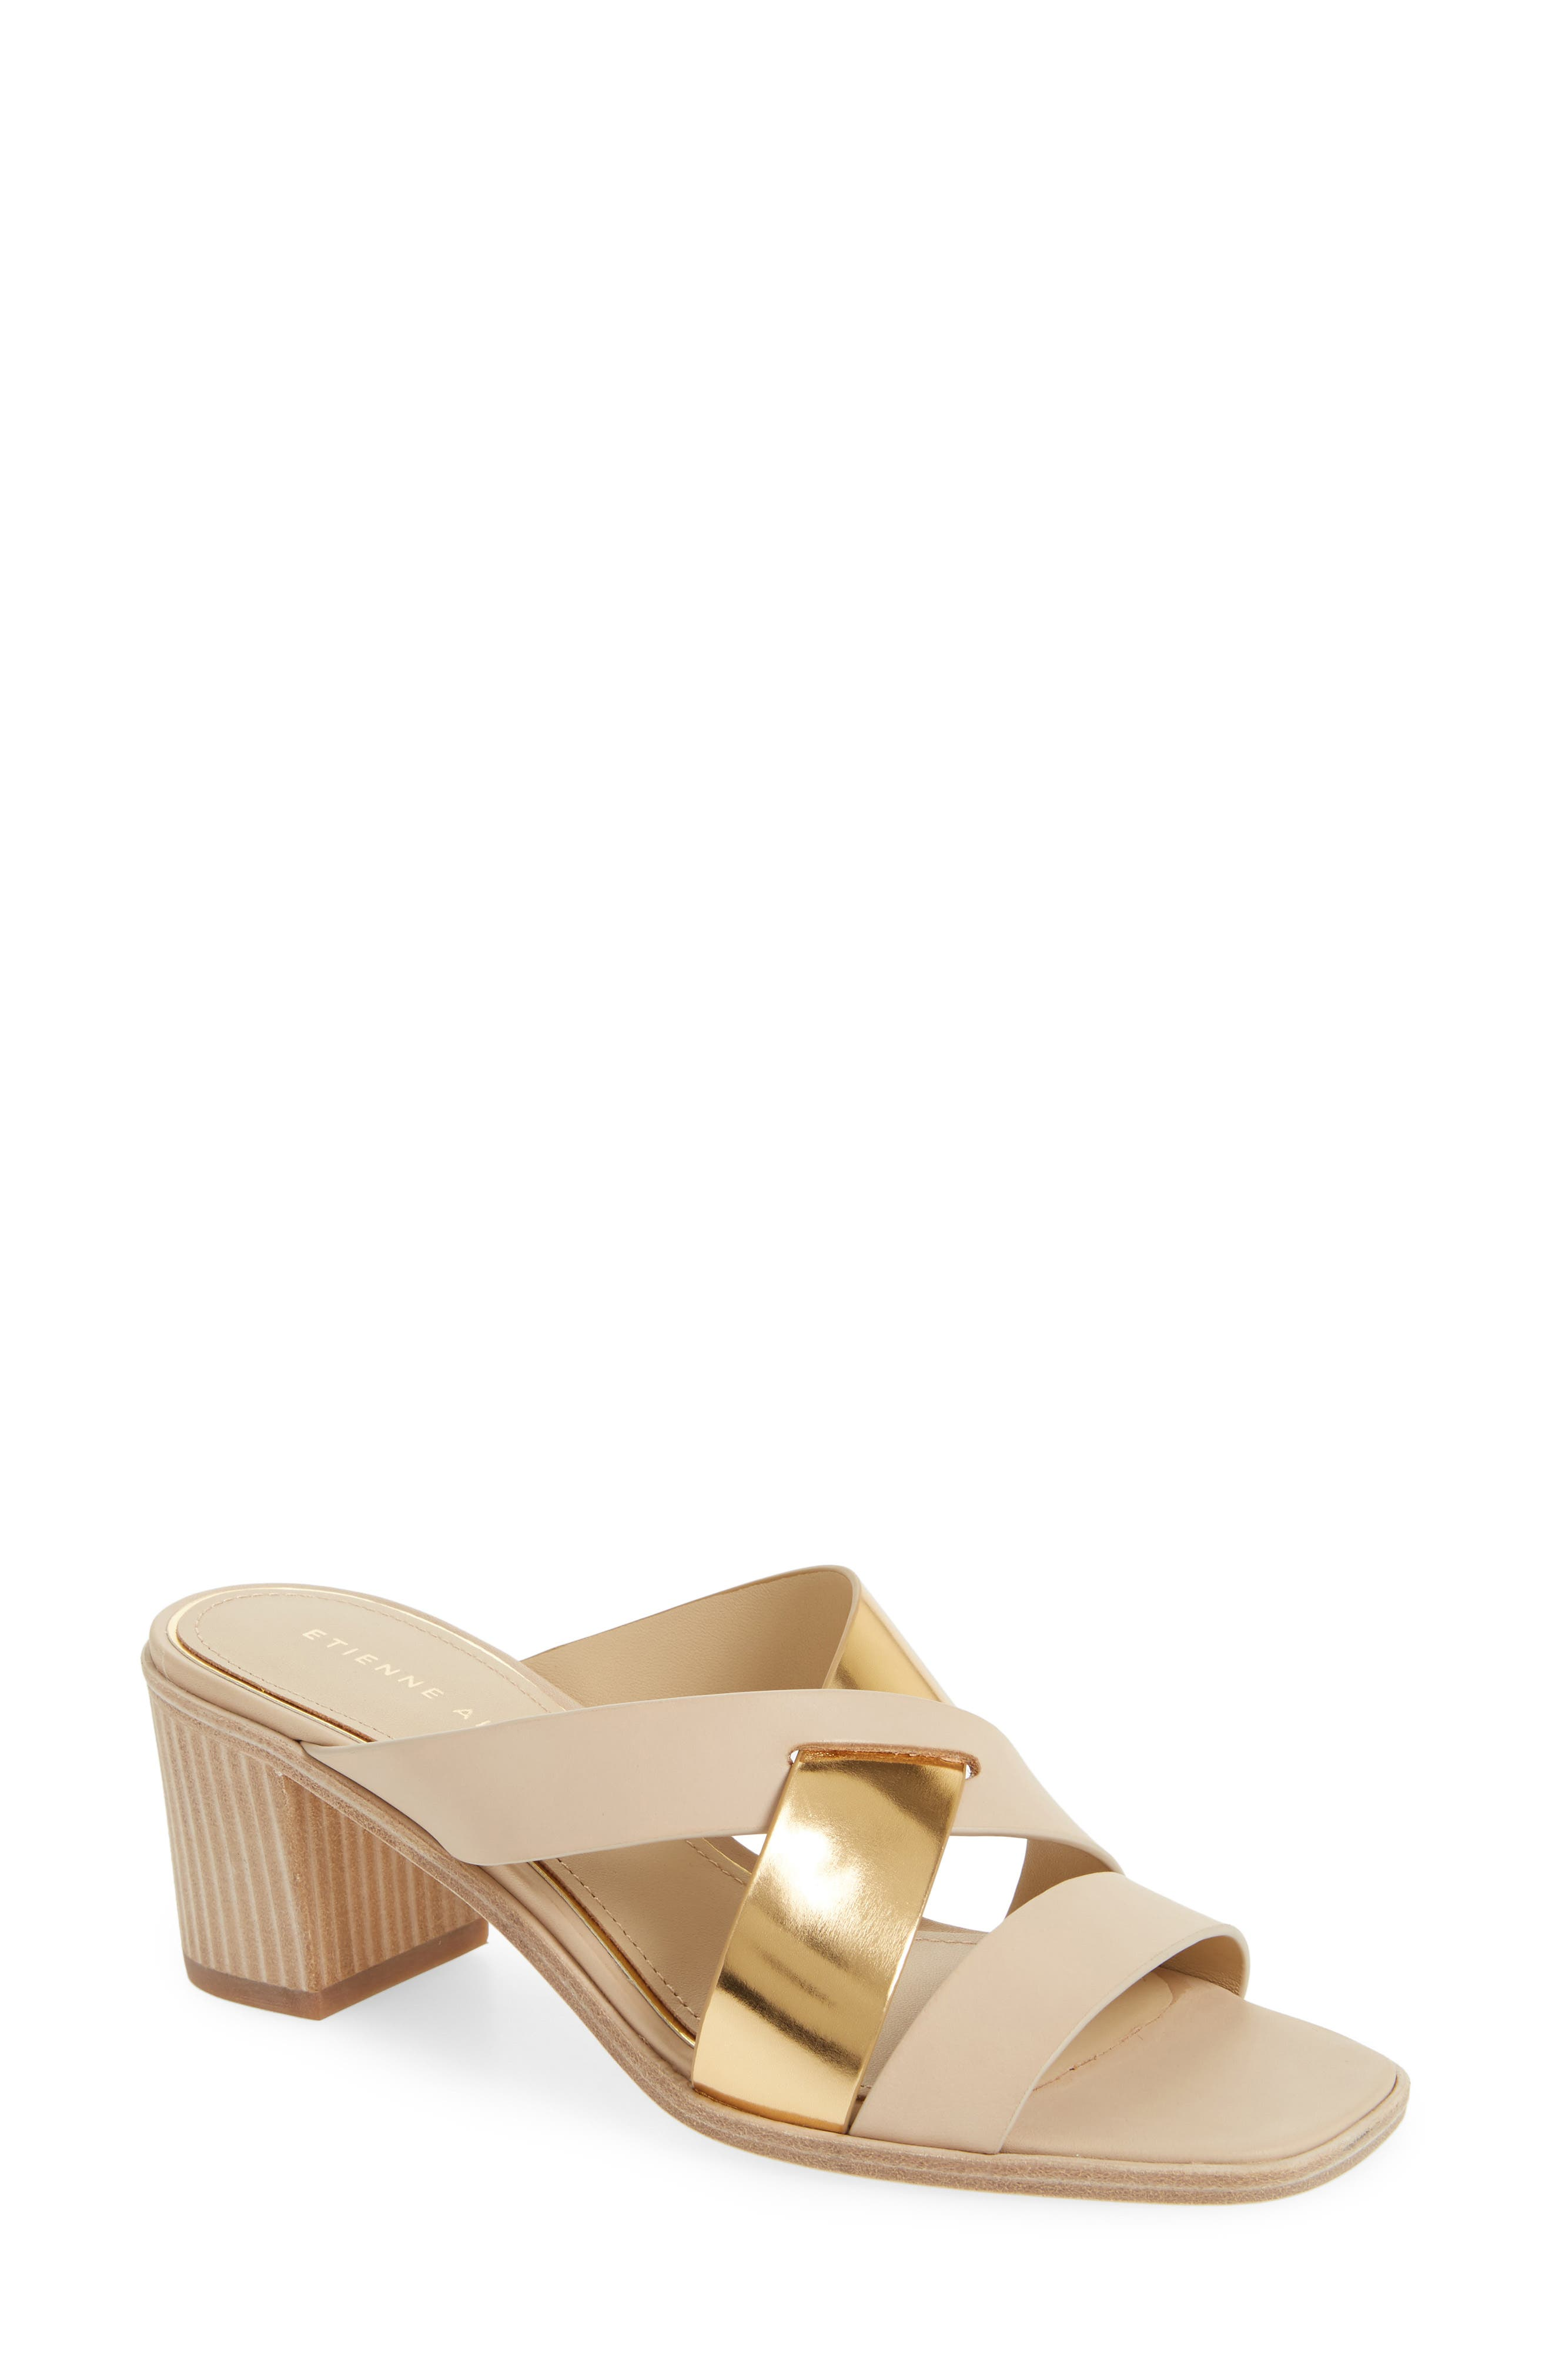 Negroni Cross Strap Mule Sandal,                         Main,                         color, Natural/ Gold Leather